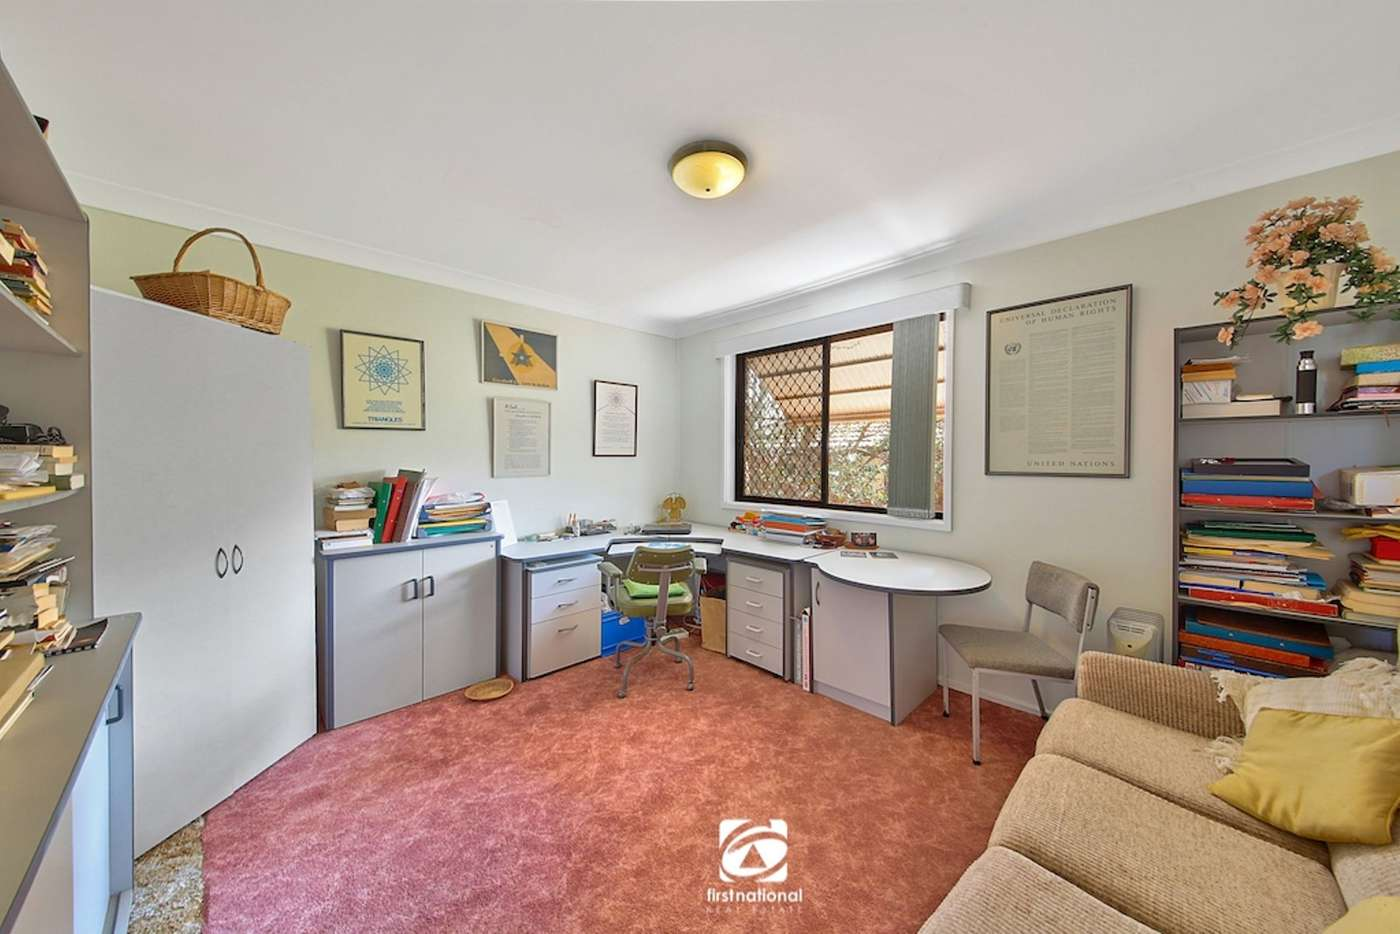 Sixth view of Homely unit listing, 2/32 Broughton Street, Campbelltown NSW 2560